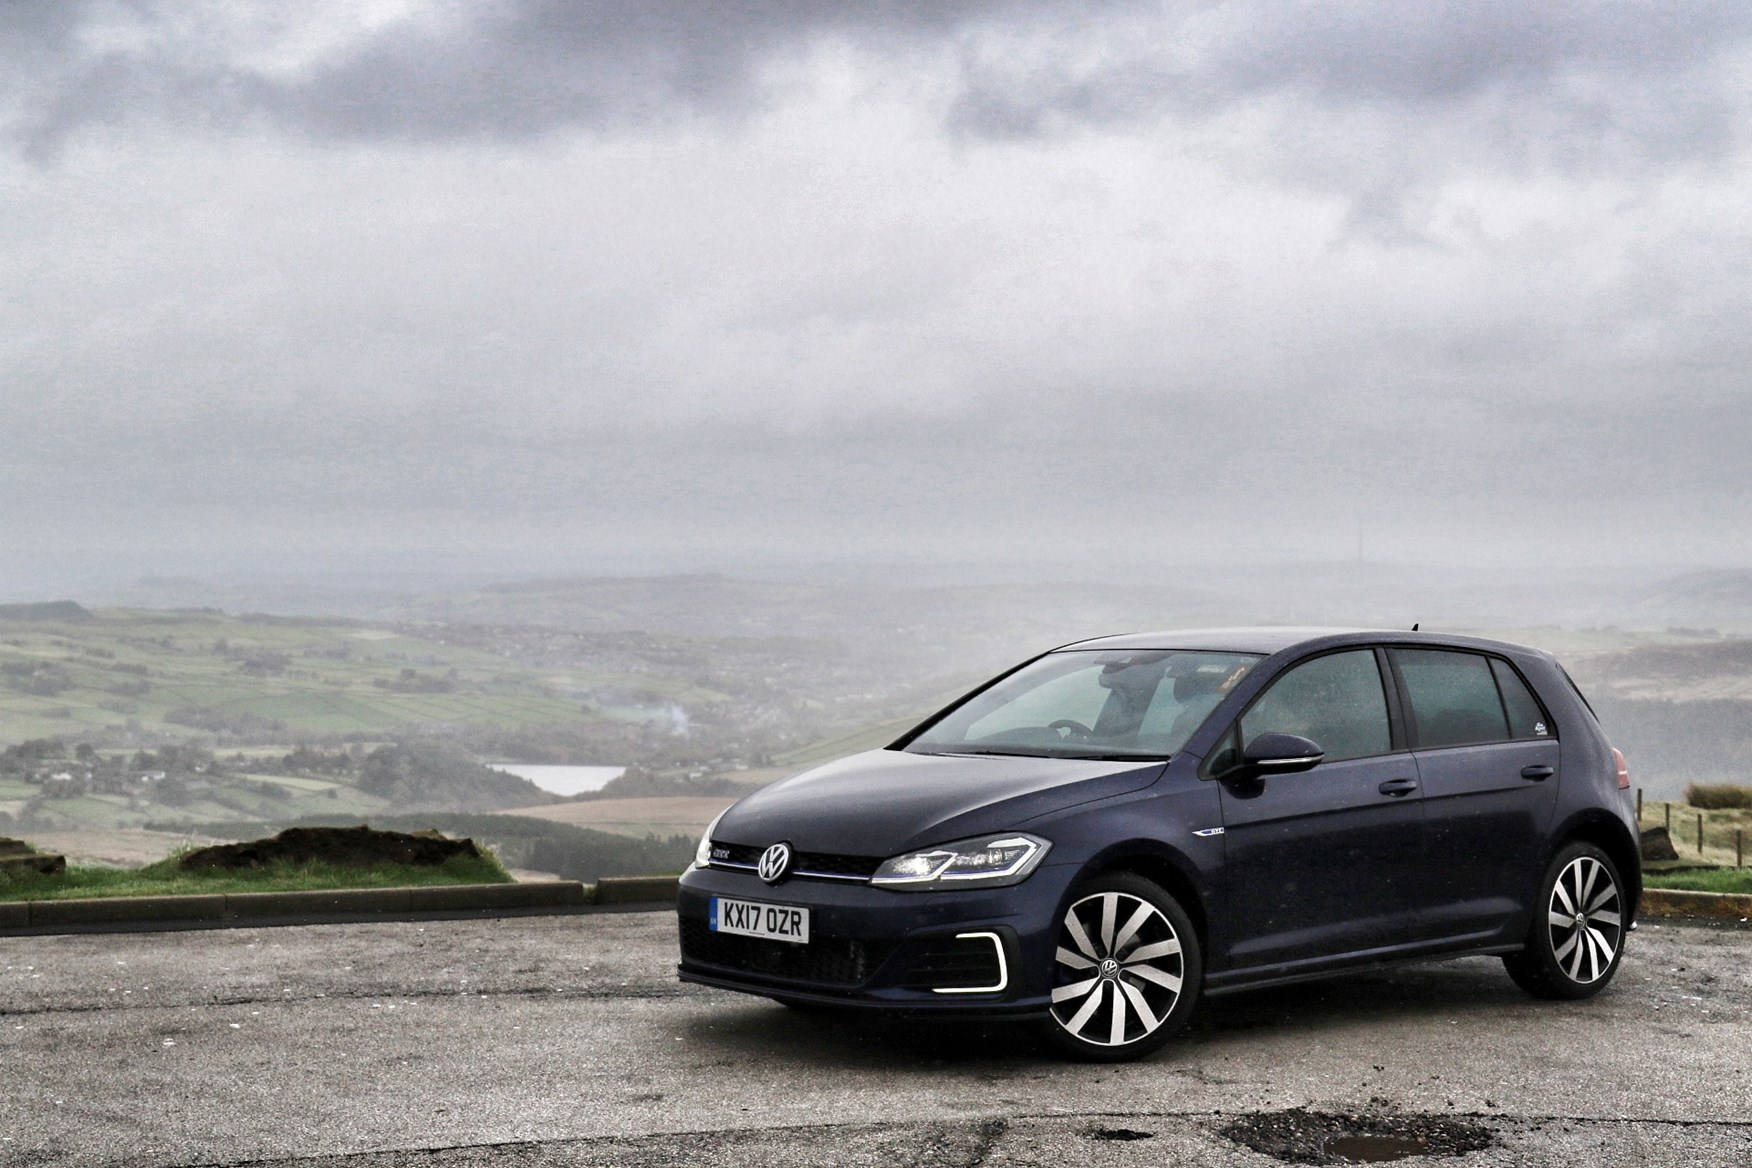 Disregard The Times We Drove The Golf To The Lake District Or Cotswolds And  That Figure Improves To 51mpg, Thanks To The High Proportion Of  Fully Charged ...